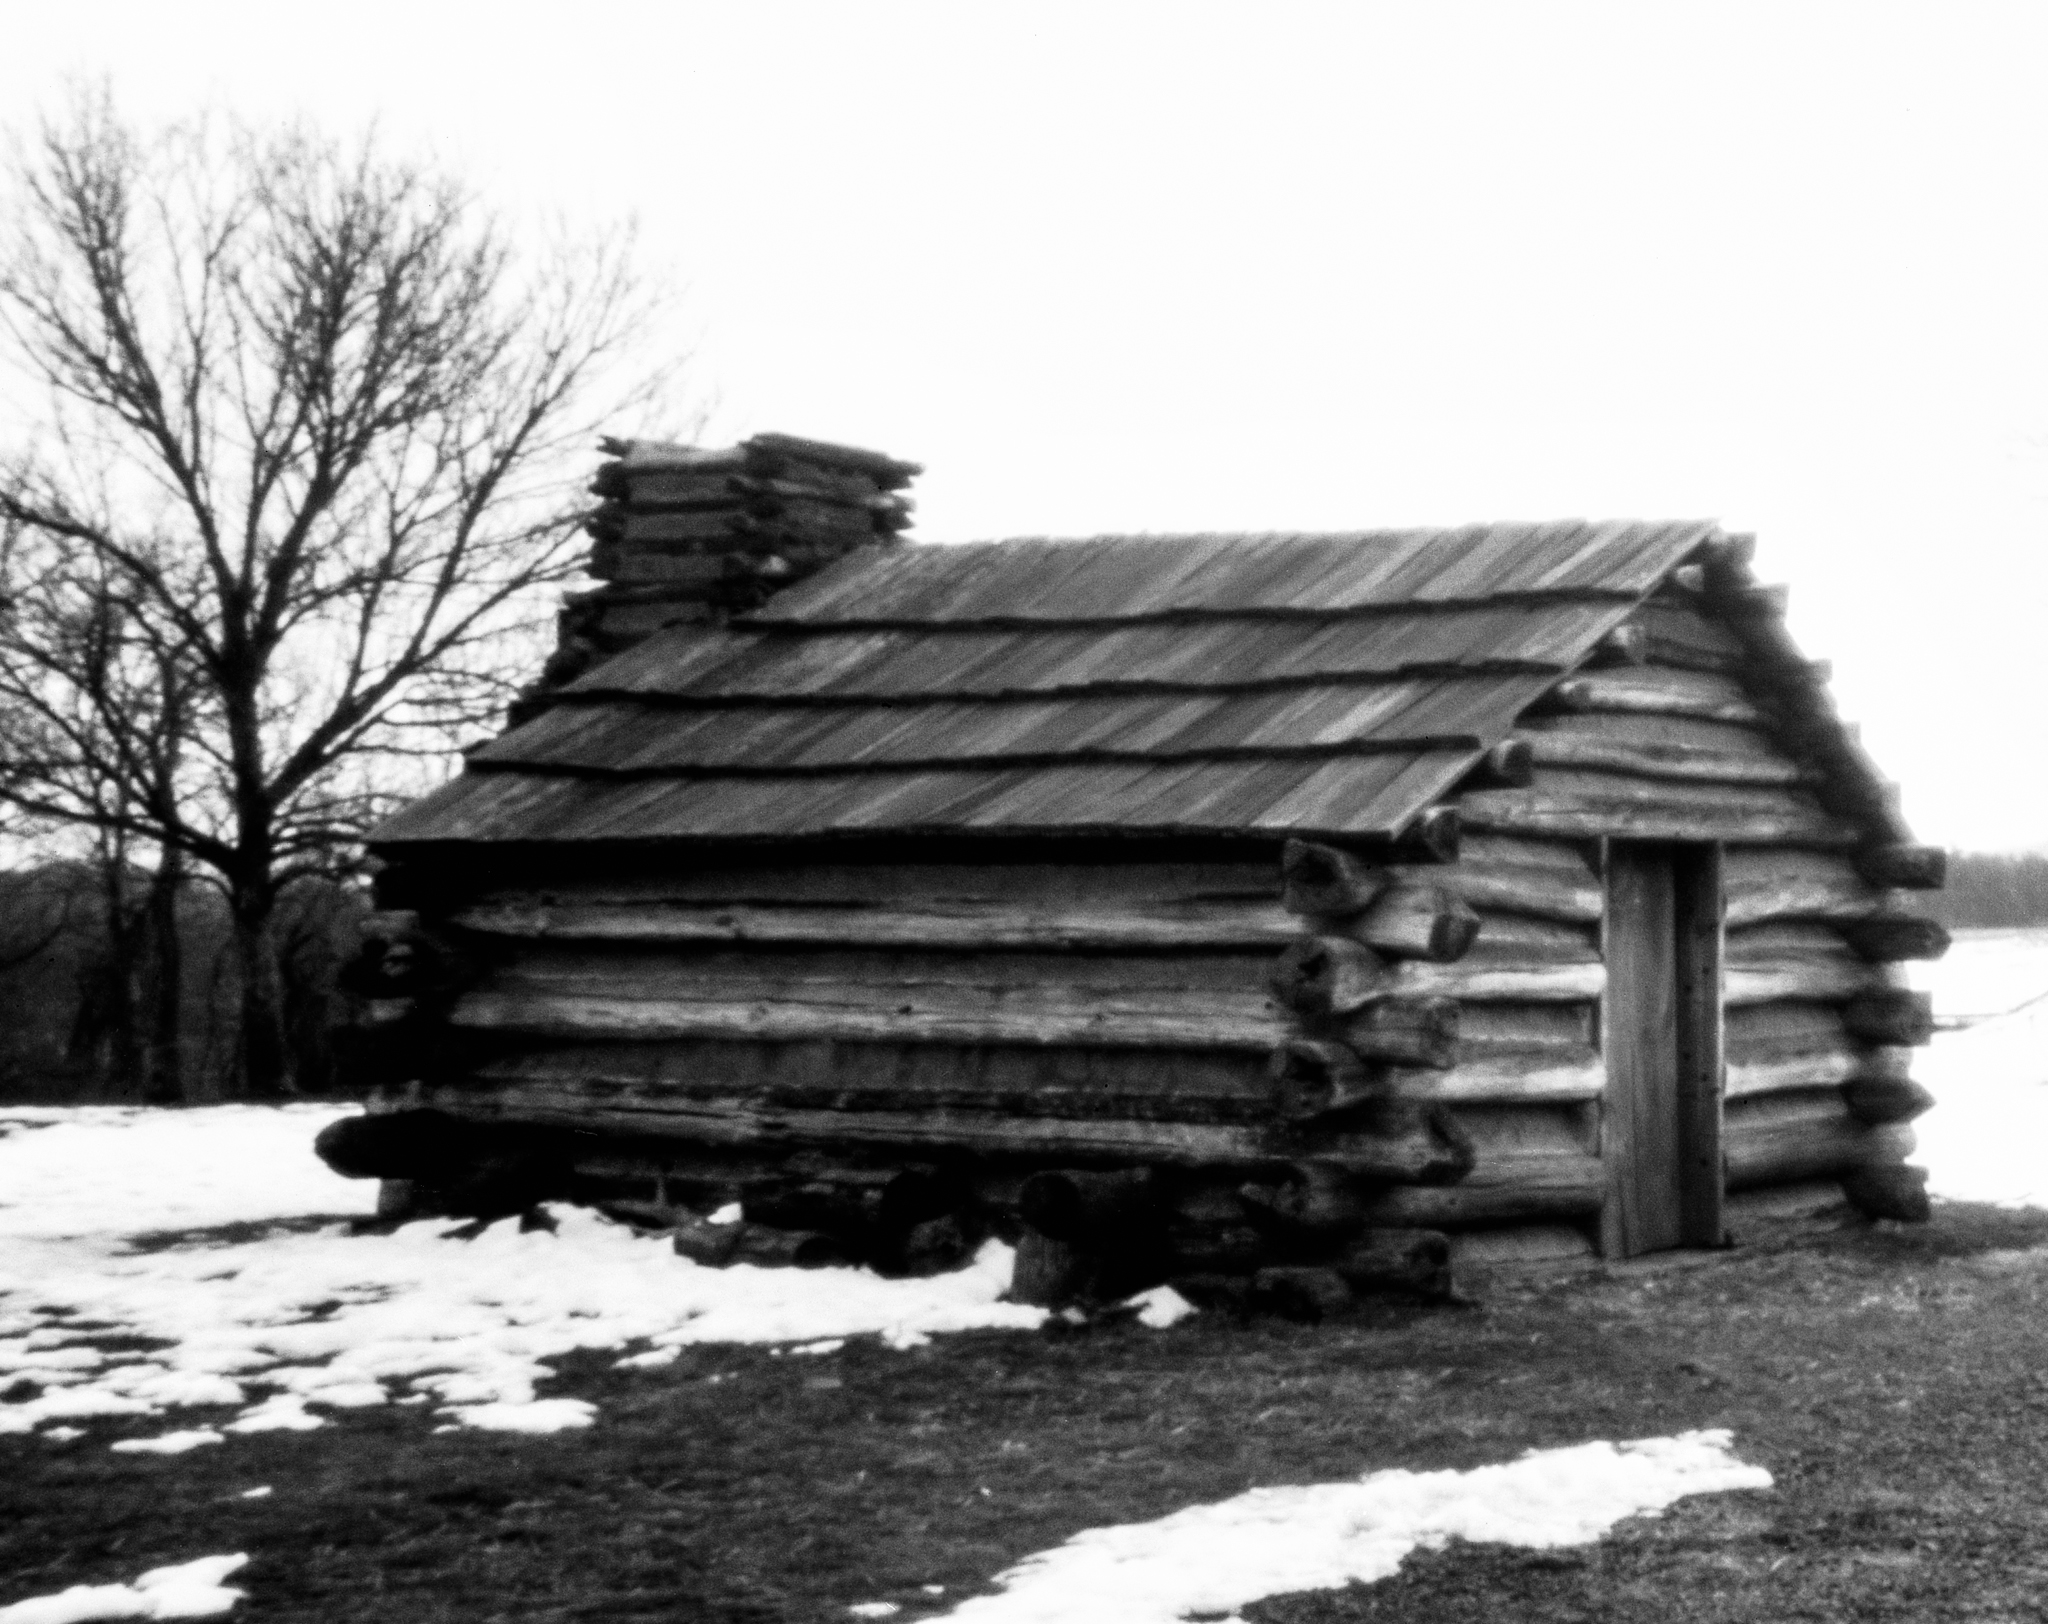 4x5_for_365_project_058_Valley_Forge_NHS_muhlenburg_cabin.jpg